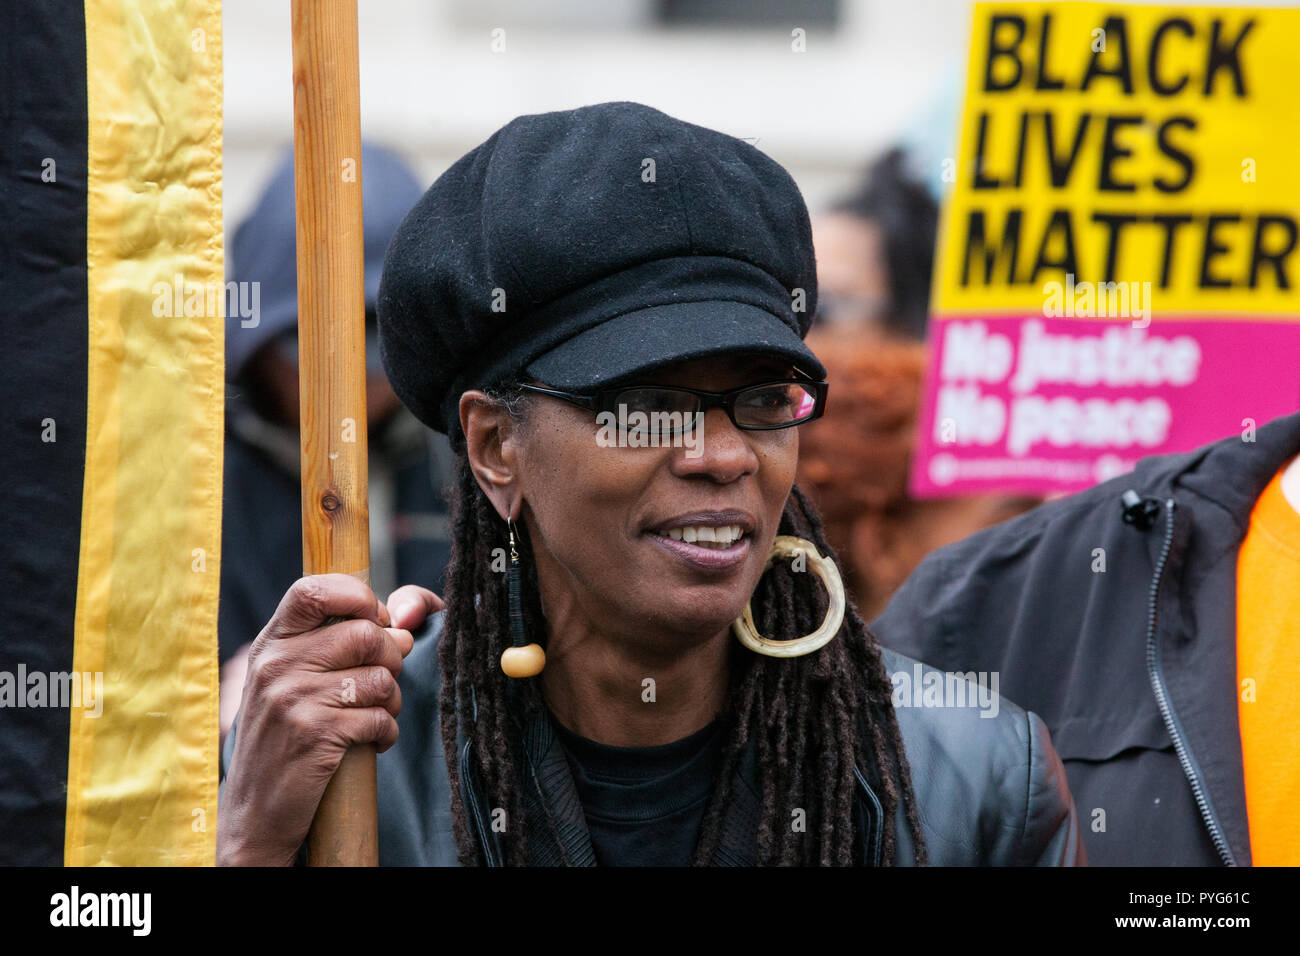 London, UK. 27th October, 2018. Marcia Rigg, sister of Sean Rigg, marches with fellow campaigners from the United Families and Friends Campaign (UFFC) taking part in the 20th annual procession to Downing Street in remembrance of family members and friends who died in police custody, prison, immigration detention or secure psychiatric hospitals. Credit: Mark Kerrison/Alamy Live News - Stock Image